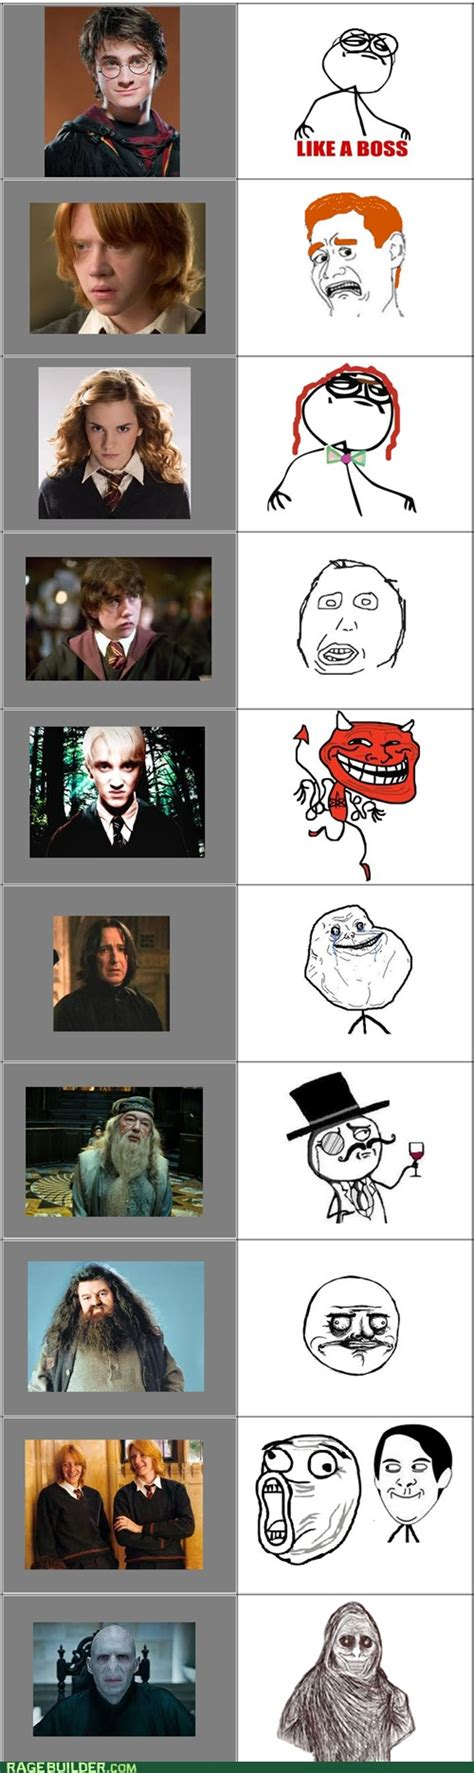 Funny Meme Characters - 343 best images about rage comics on pinterest funny dads and hogwarts